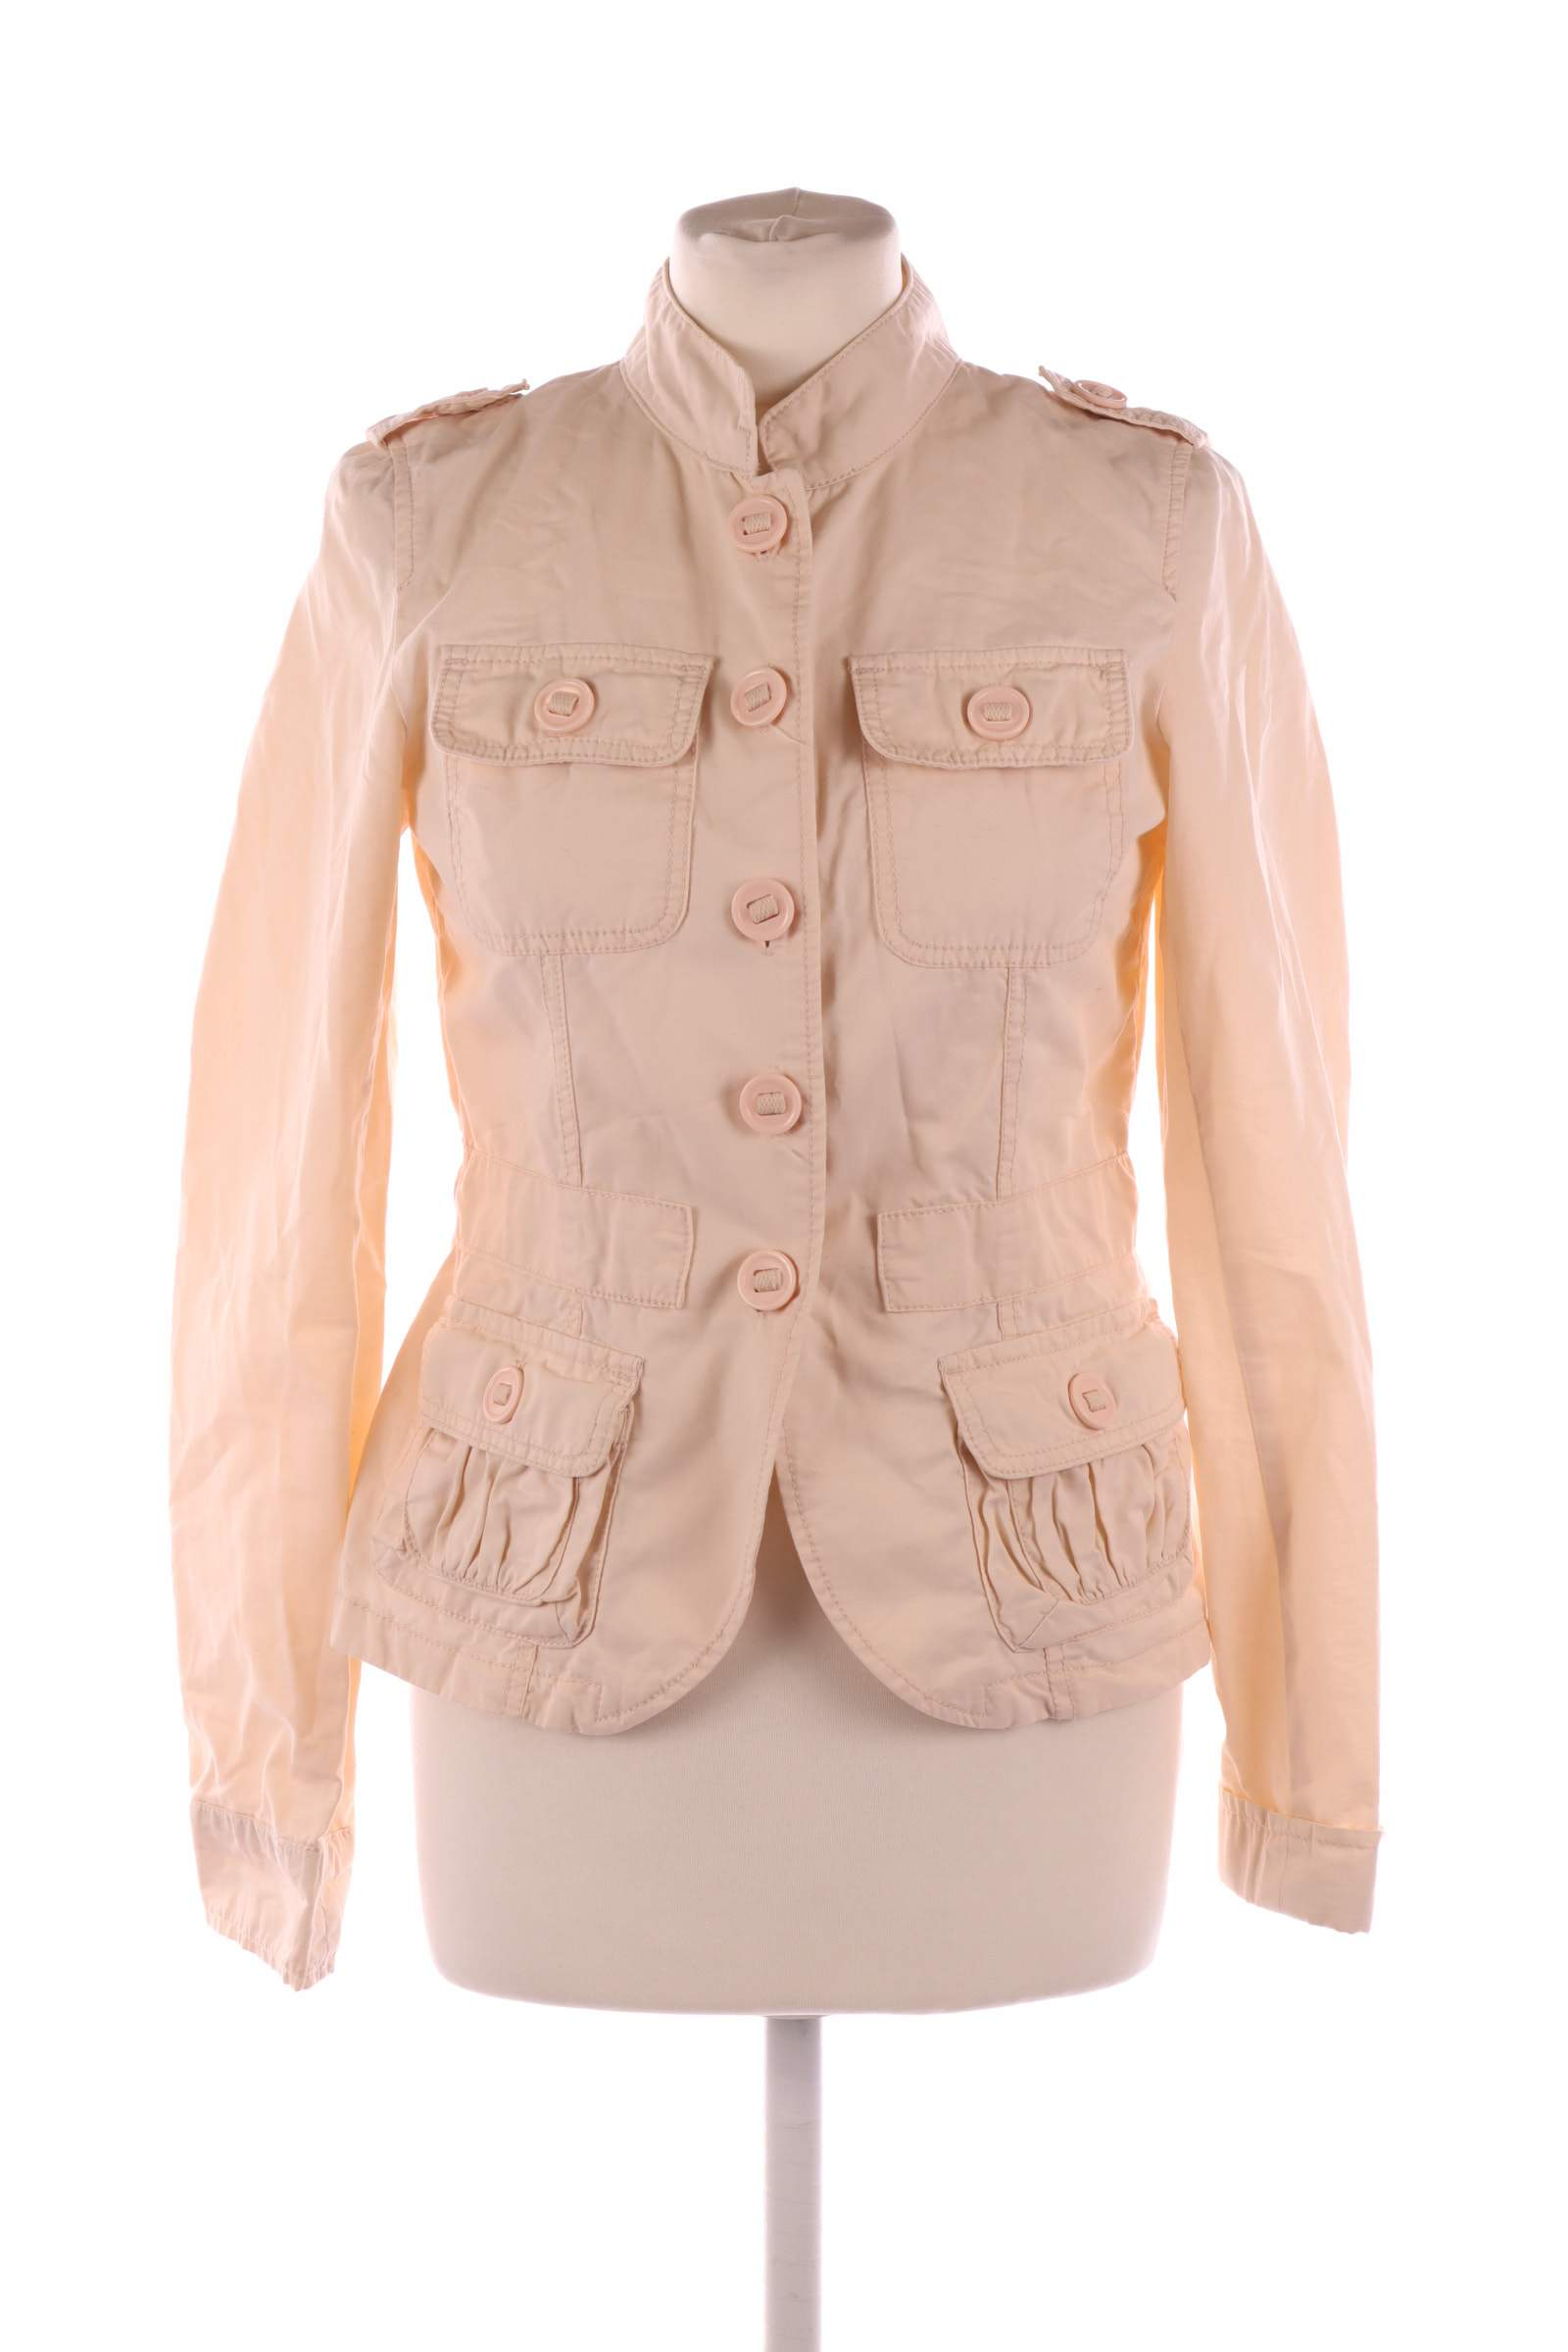 Only Beige Coat - upty.store